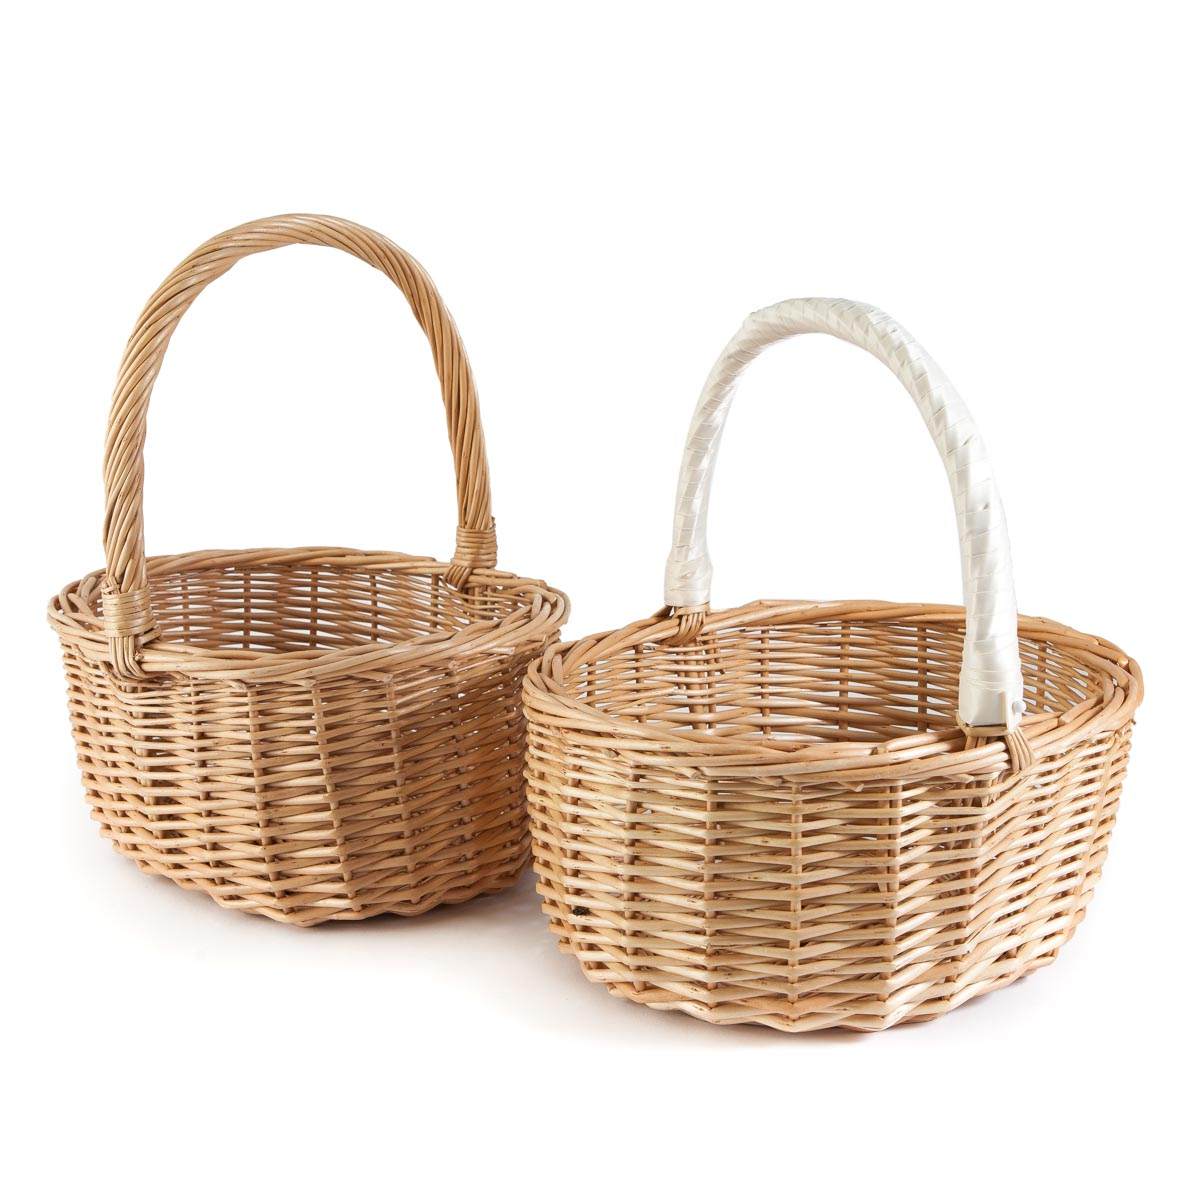 deep oval baskets